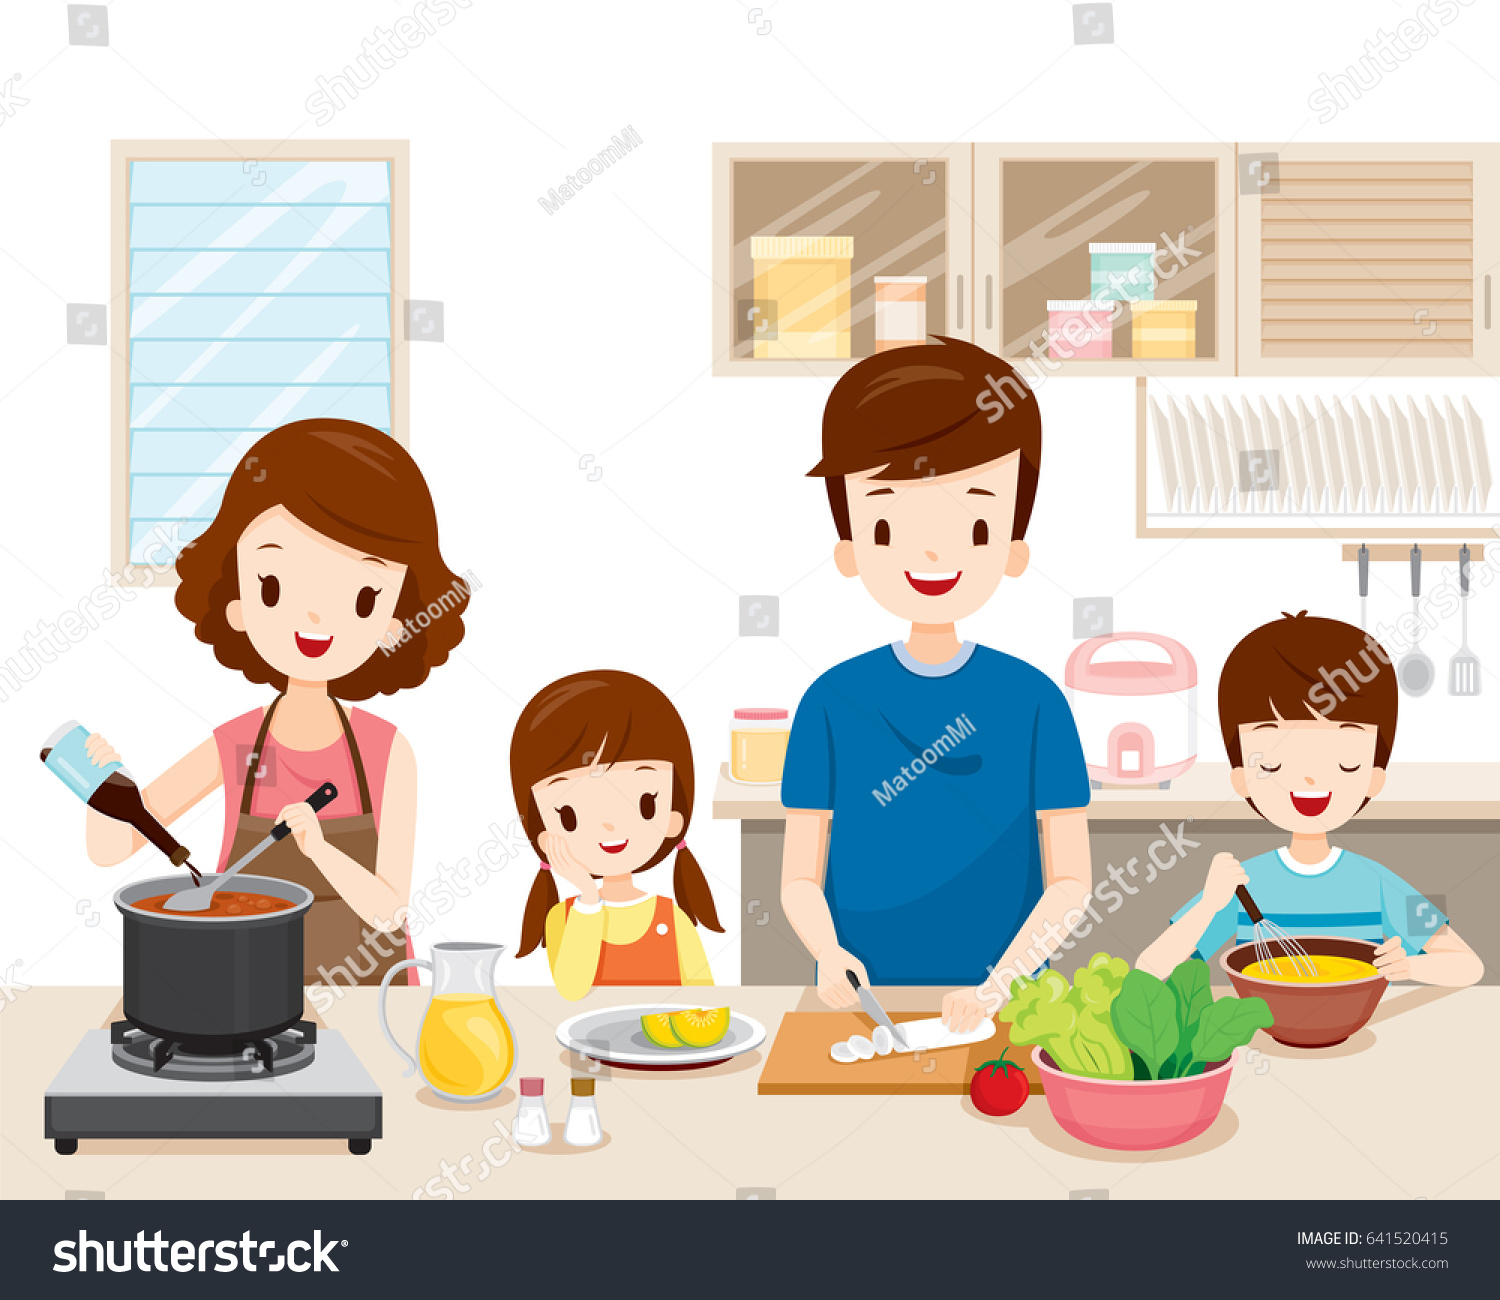 Selection of cartoons on cooking kitchens food and eating - Happy Family Cooking Food In The Kitchen Together Kitchenware Crockery House Home